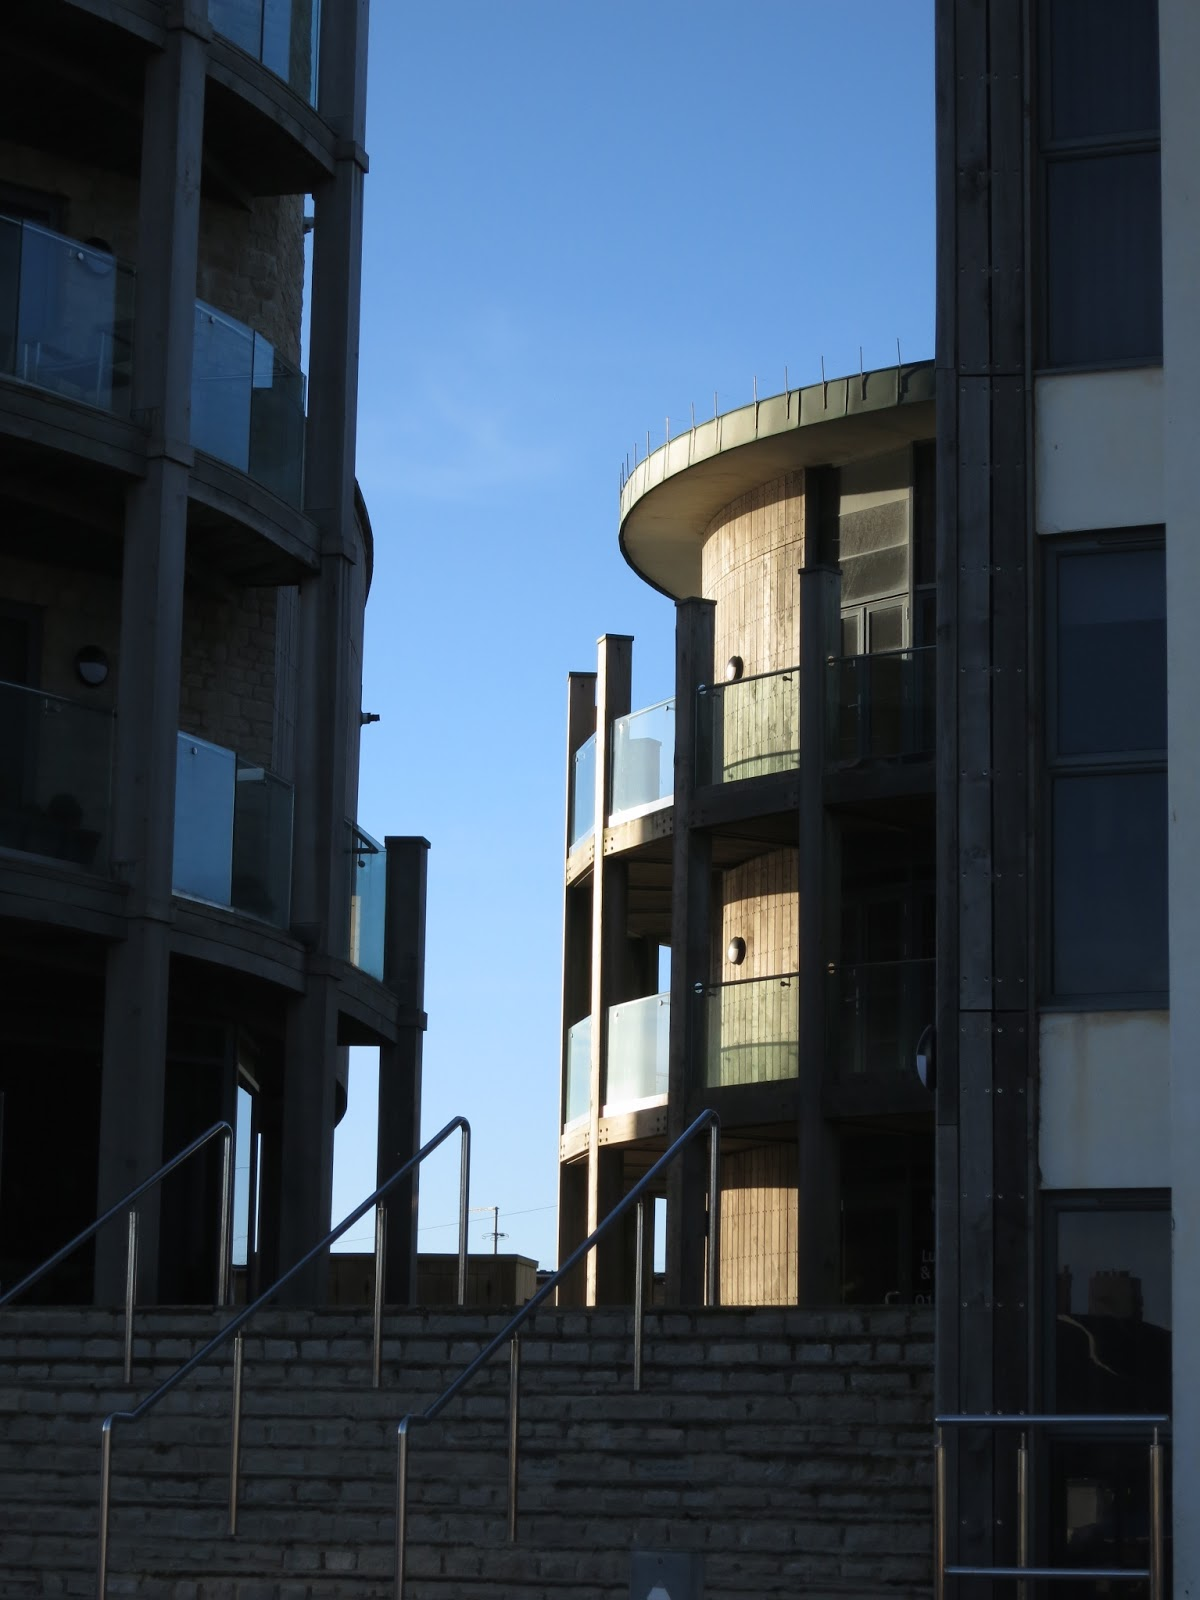 Curved buildings with steps between and blue sky beyond.